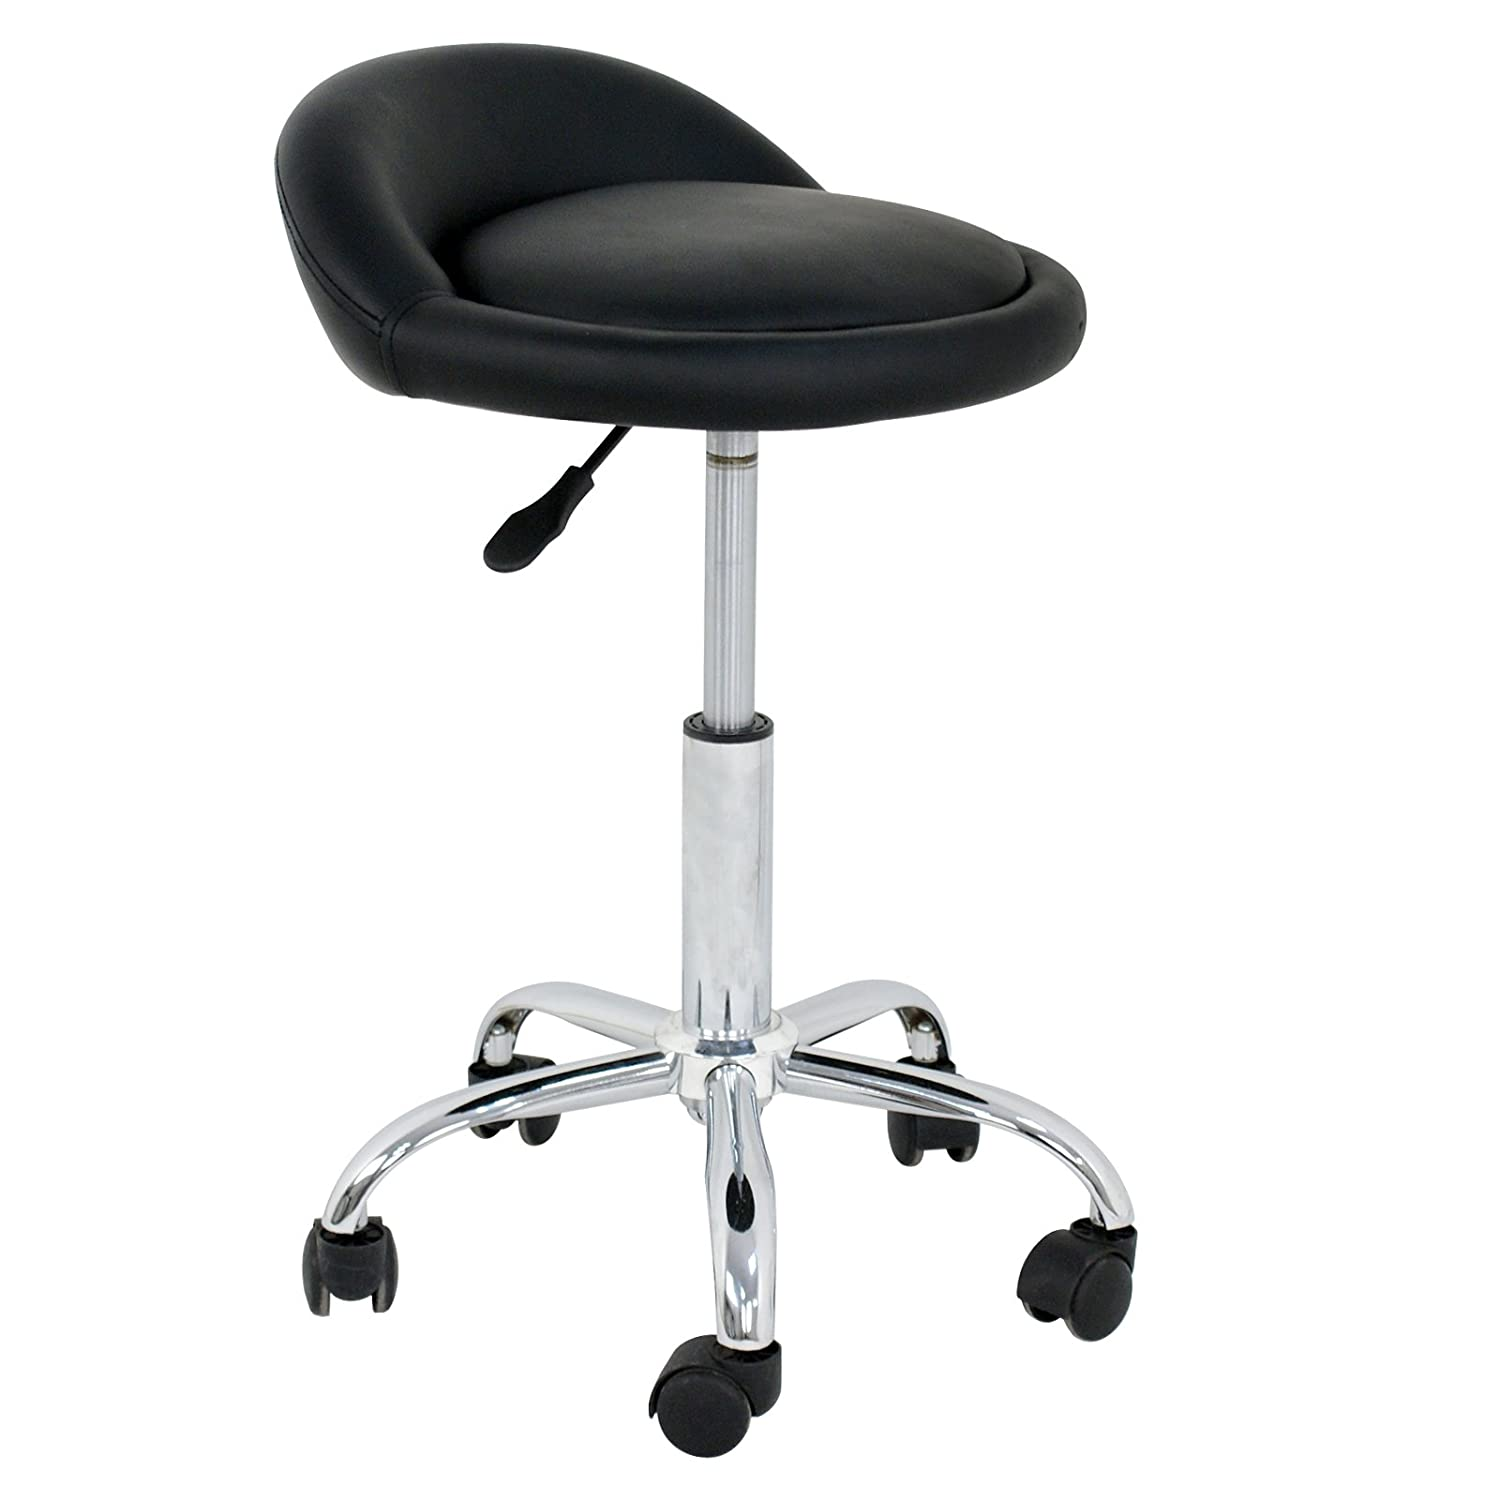 BBBuy Charlotte Mall Adjustable Max 86% OFF Relief Hydraulic Massage Tatto Stool Facial Spa